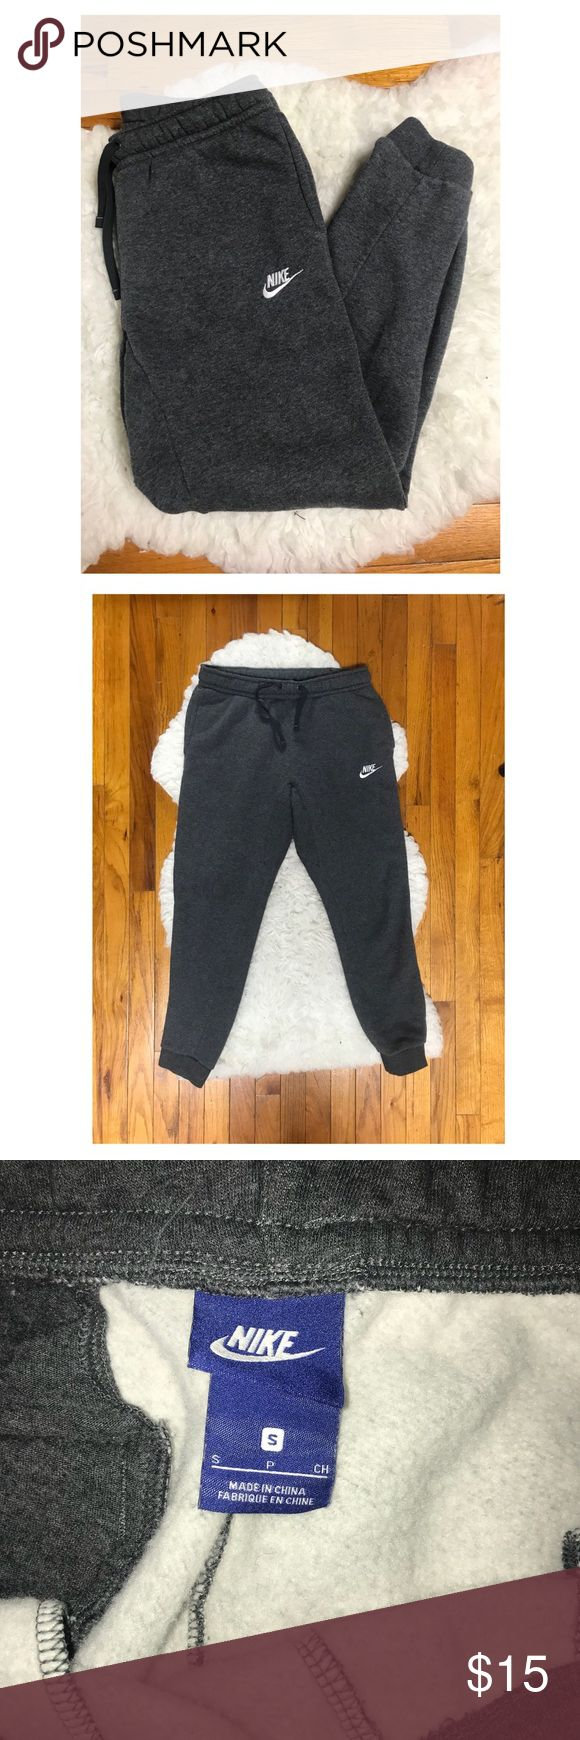 Men's Grey Nike Jogger Pants *New without tags* These Nike joggers are in perfect condition. Very soft inside with an elastic waistband. Size Small. Nike Pants Sweatpants & Joggers